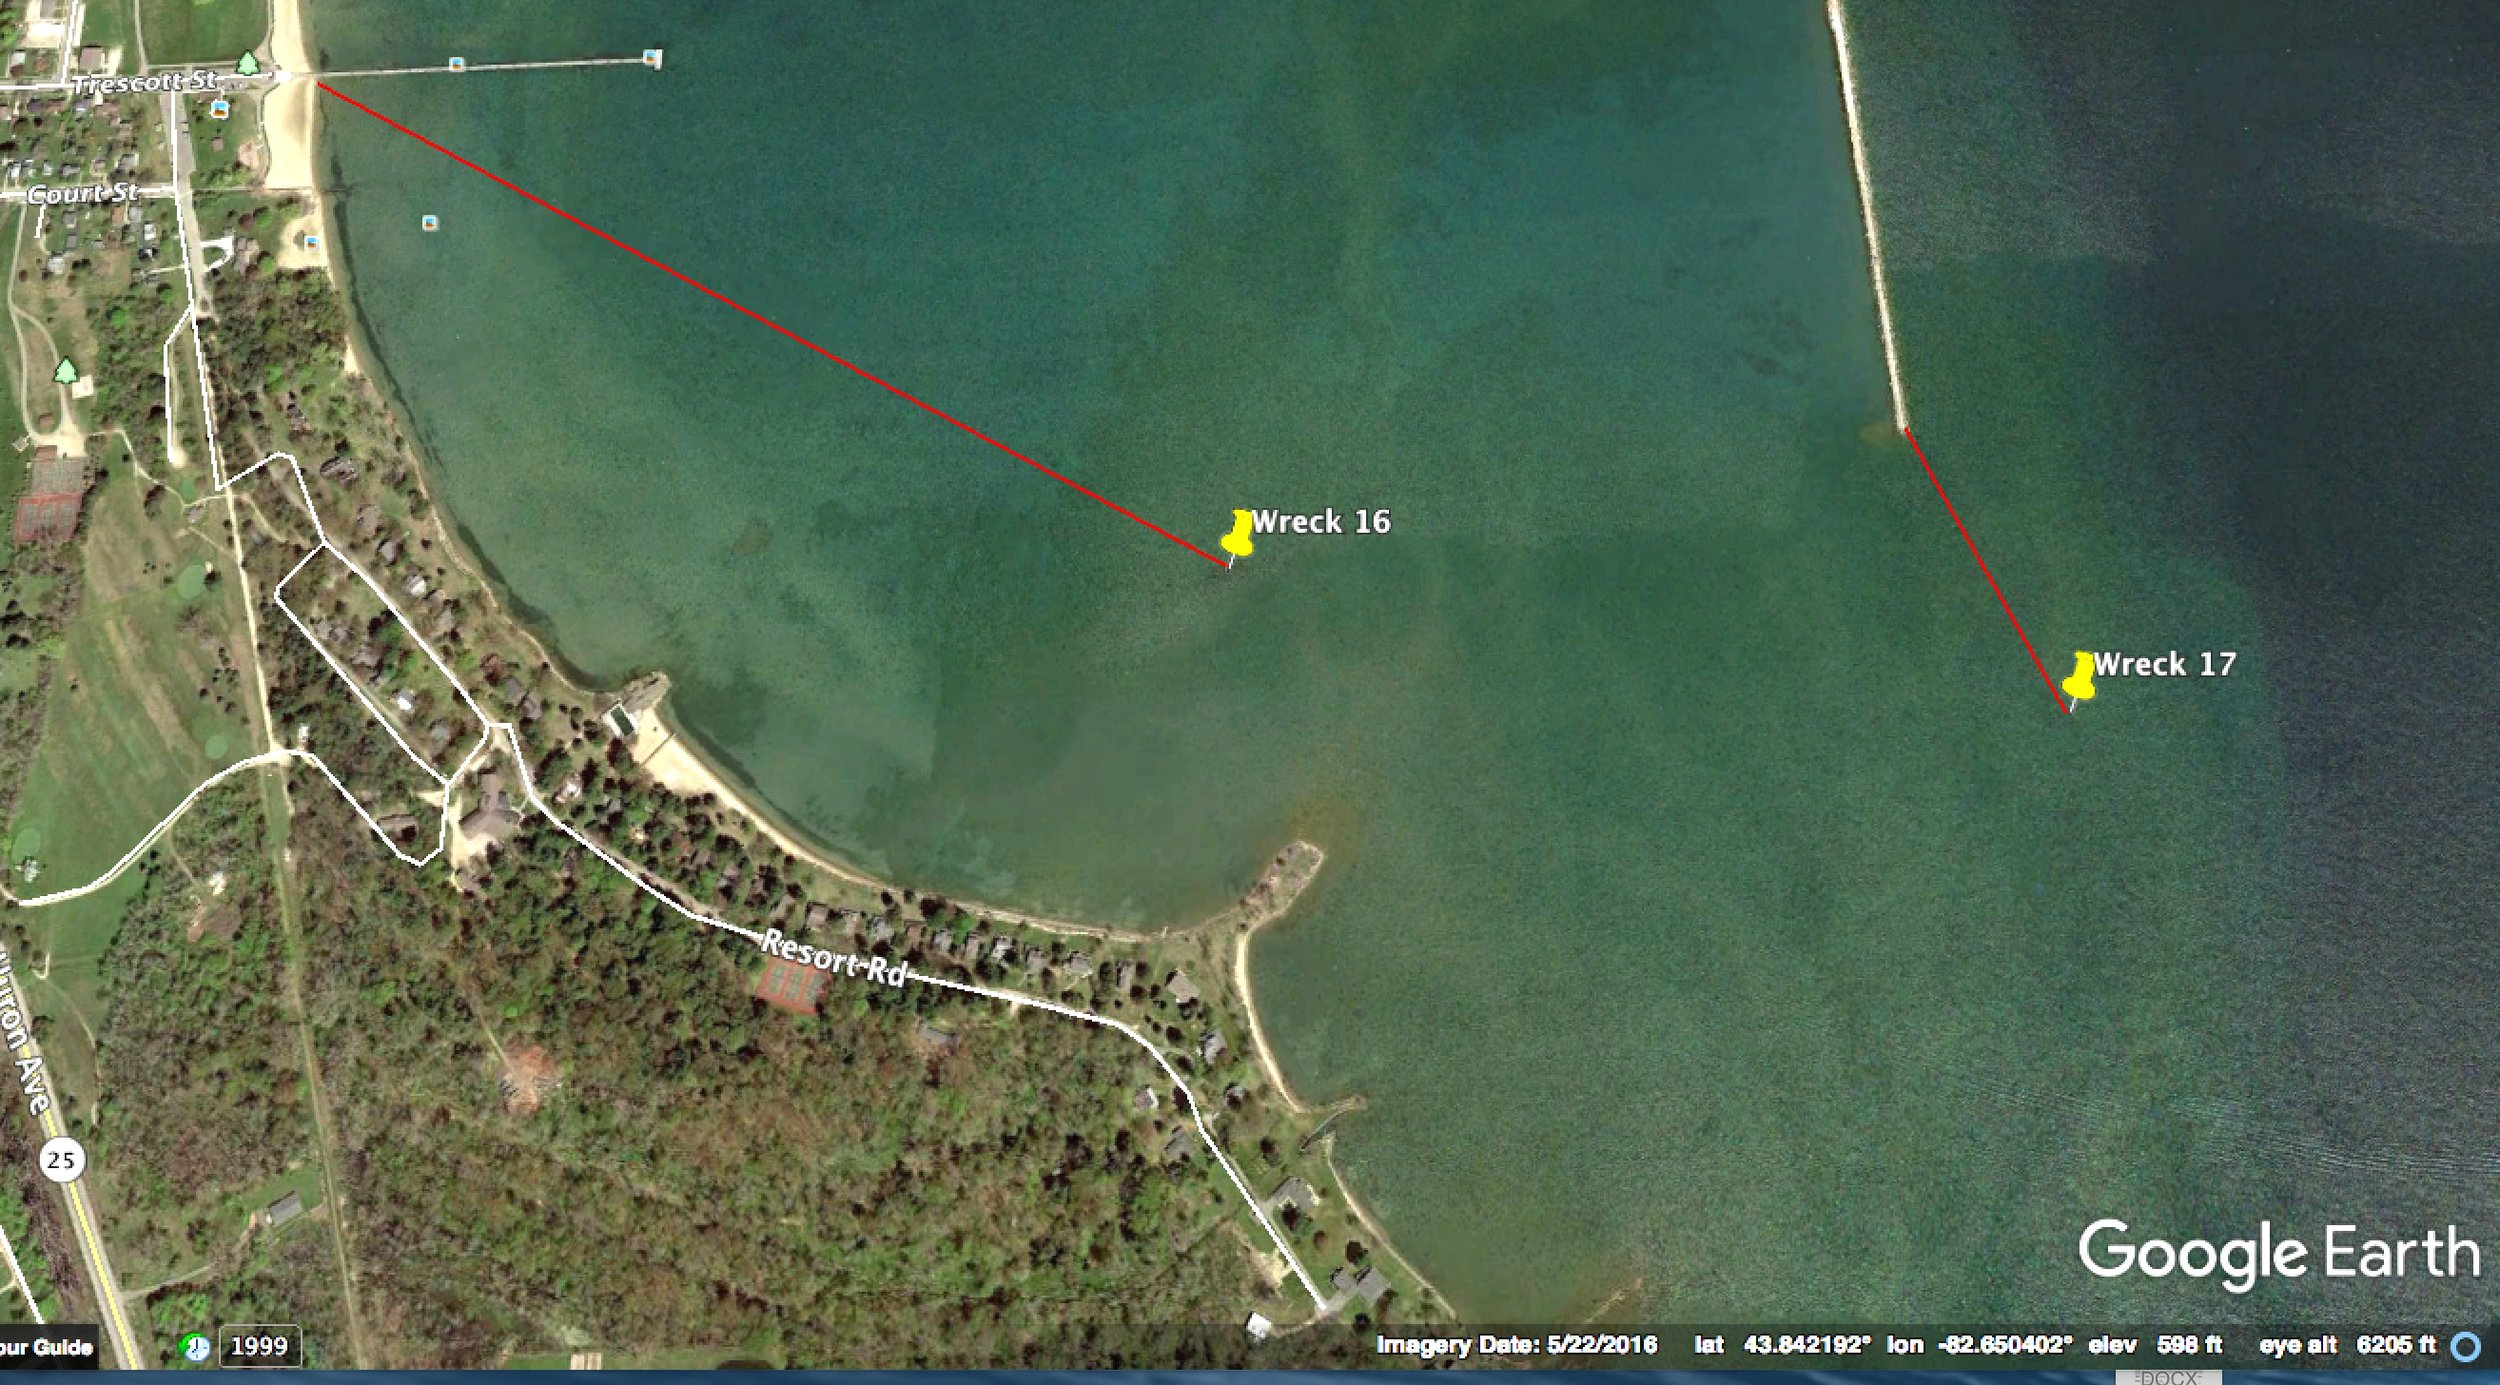 Wreck is 780 ft. from south end of the Harbor Beach breakwater on a bearing of 156 degrees. Public access from the Trescott St. pier. (No Google aerial image is available.)